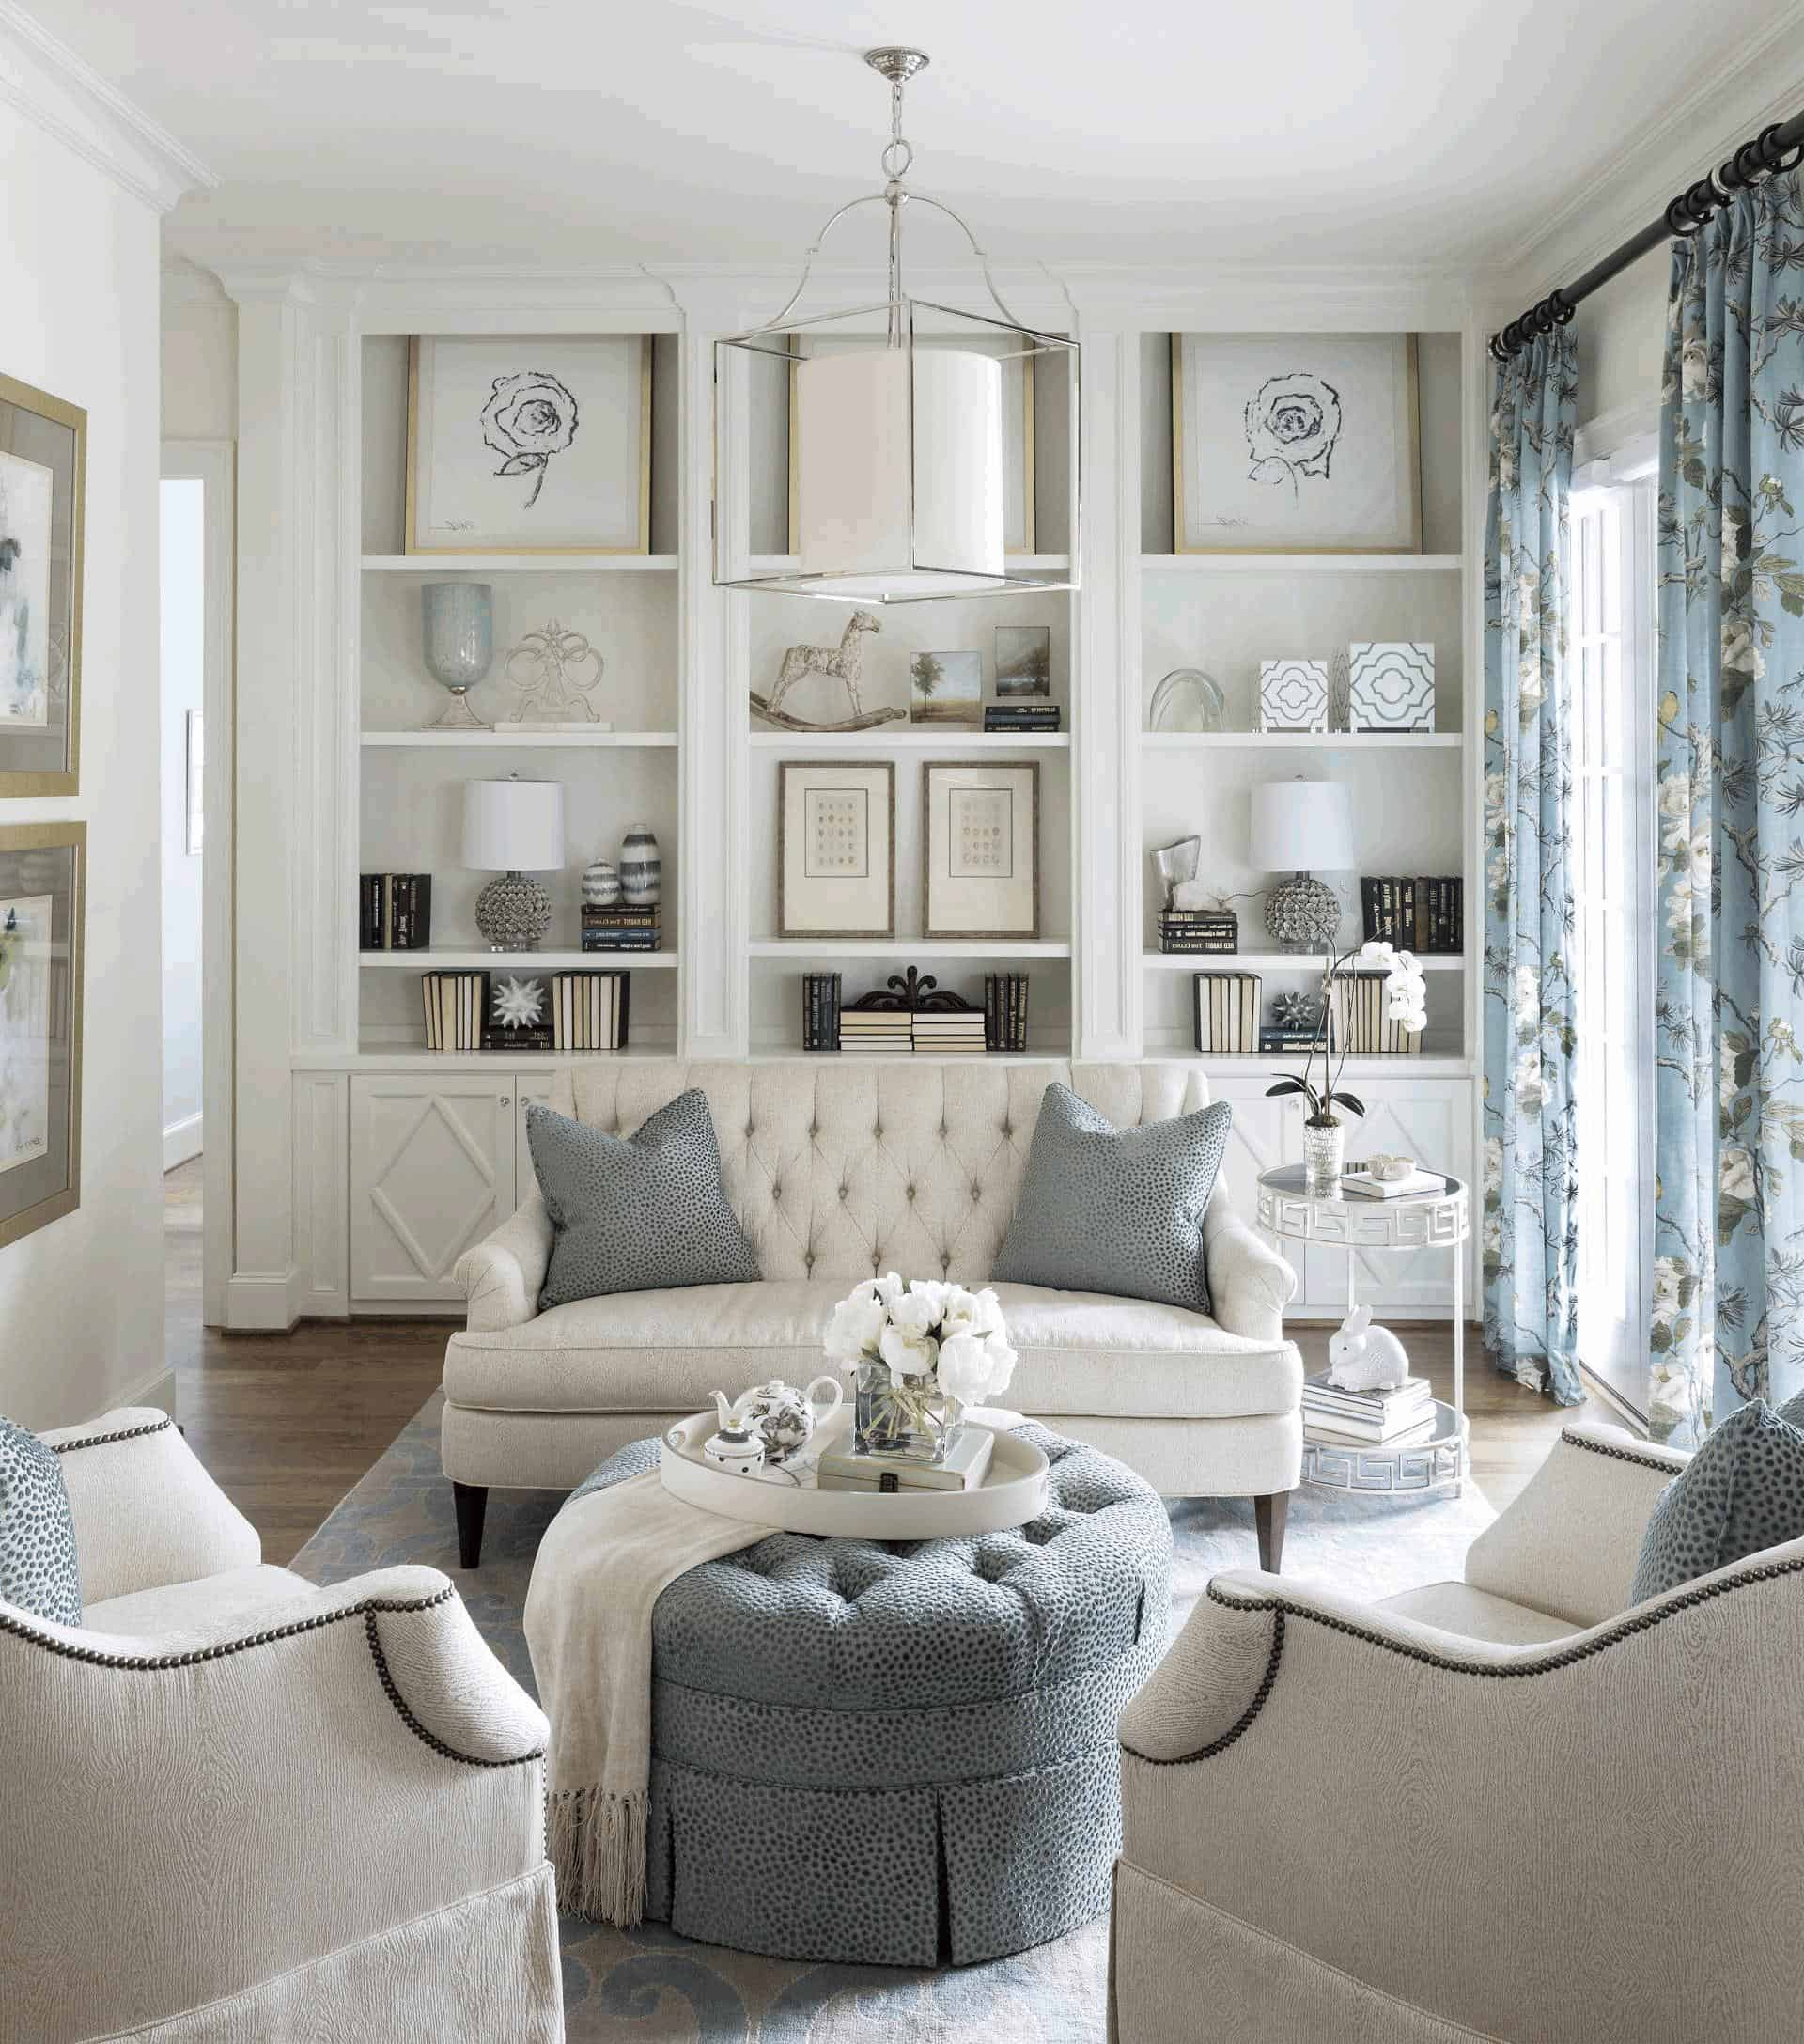 White Living Room: 12 Lovely White Living Room Furniture Ideas